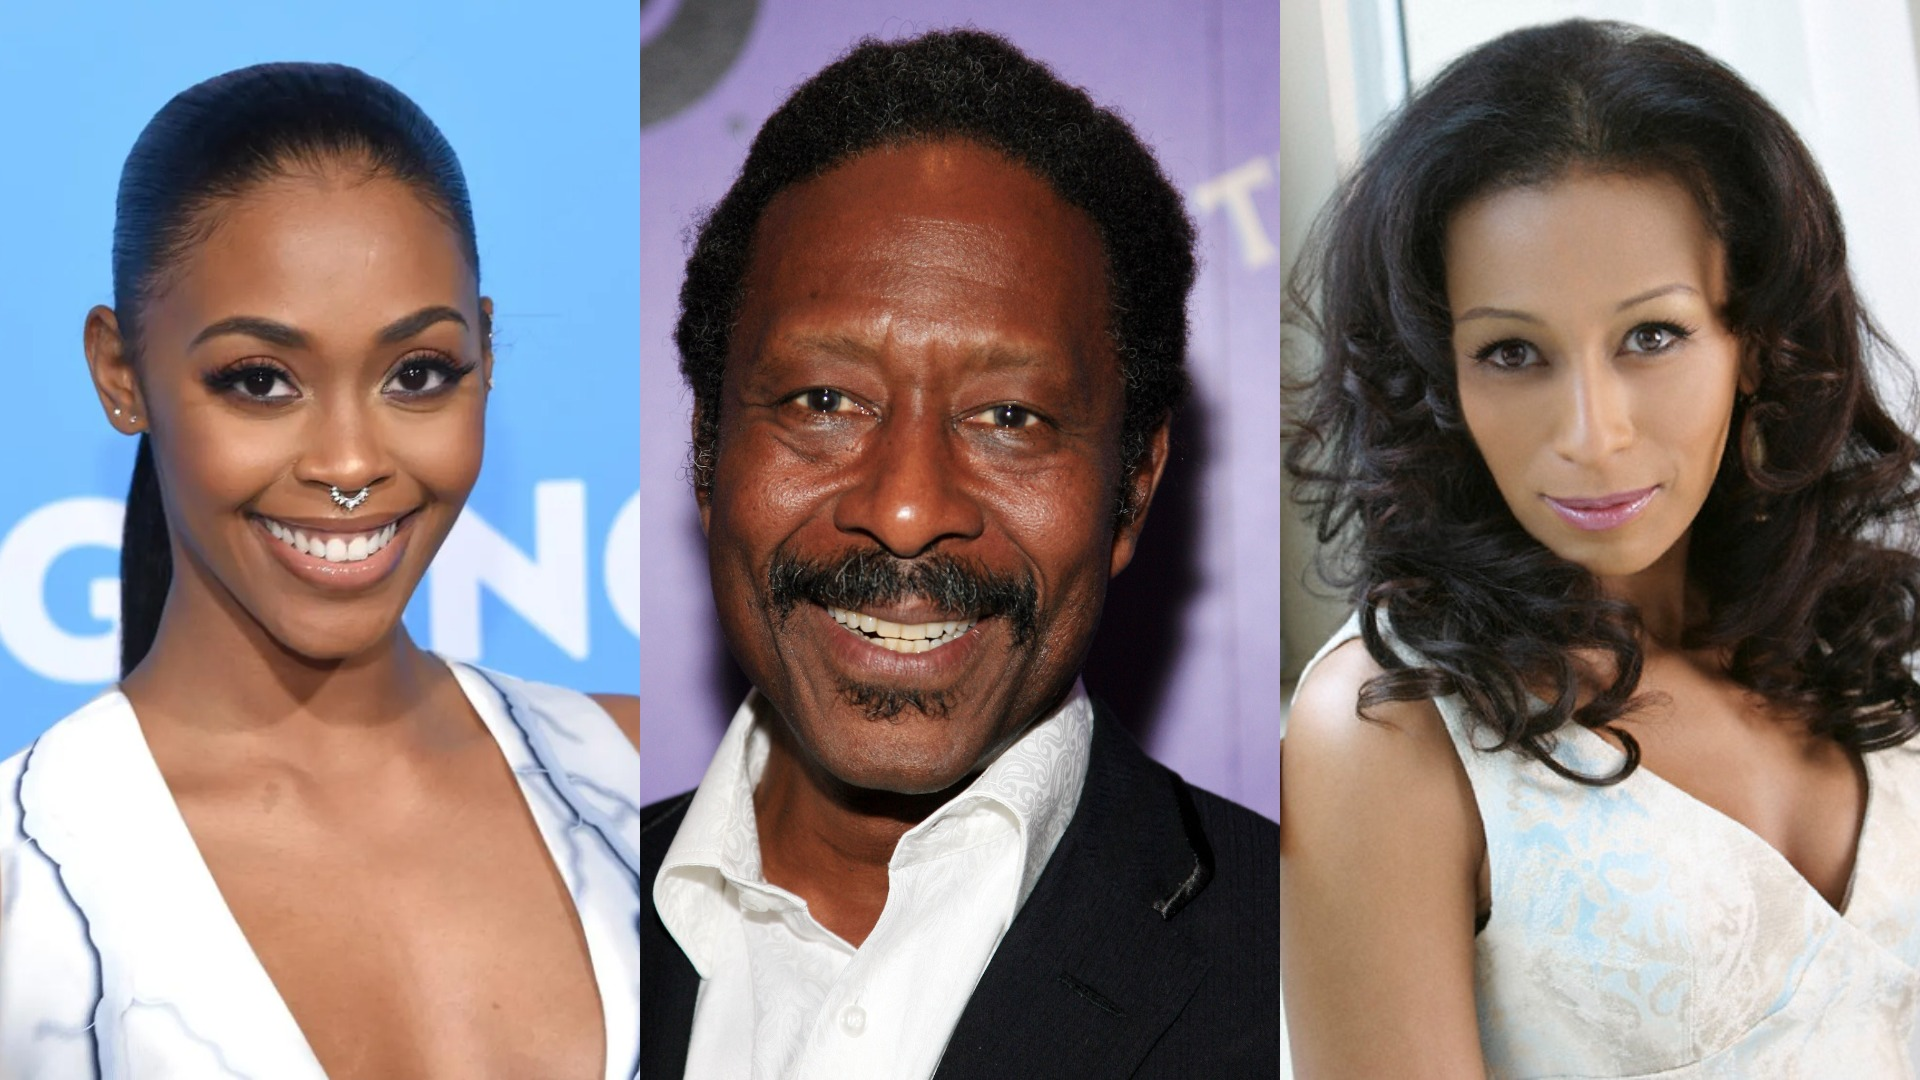 Deadline is exclusively reporting that Nafessa Williams, Clarke Peters and Tamara Tunie are the latest names to join the cast of the Whitney Houston biopic I Wanna Dance With Somebody.